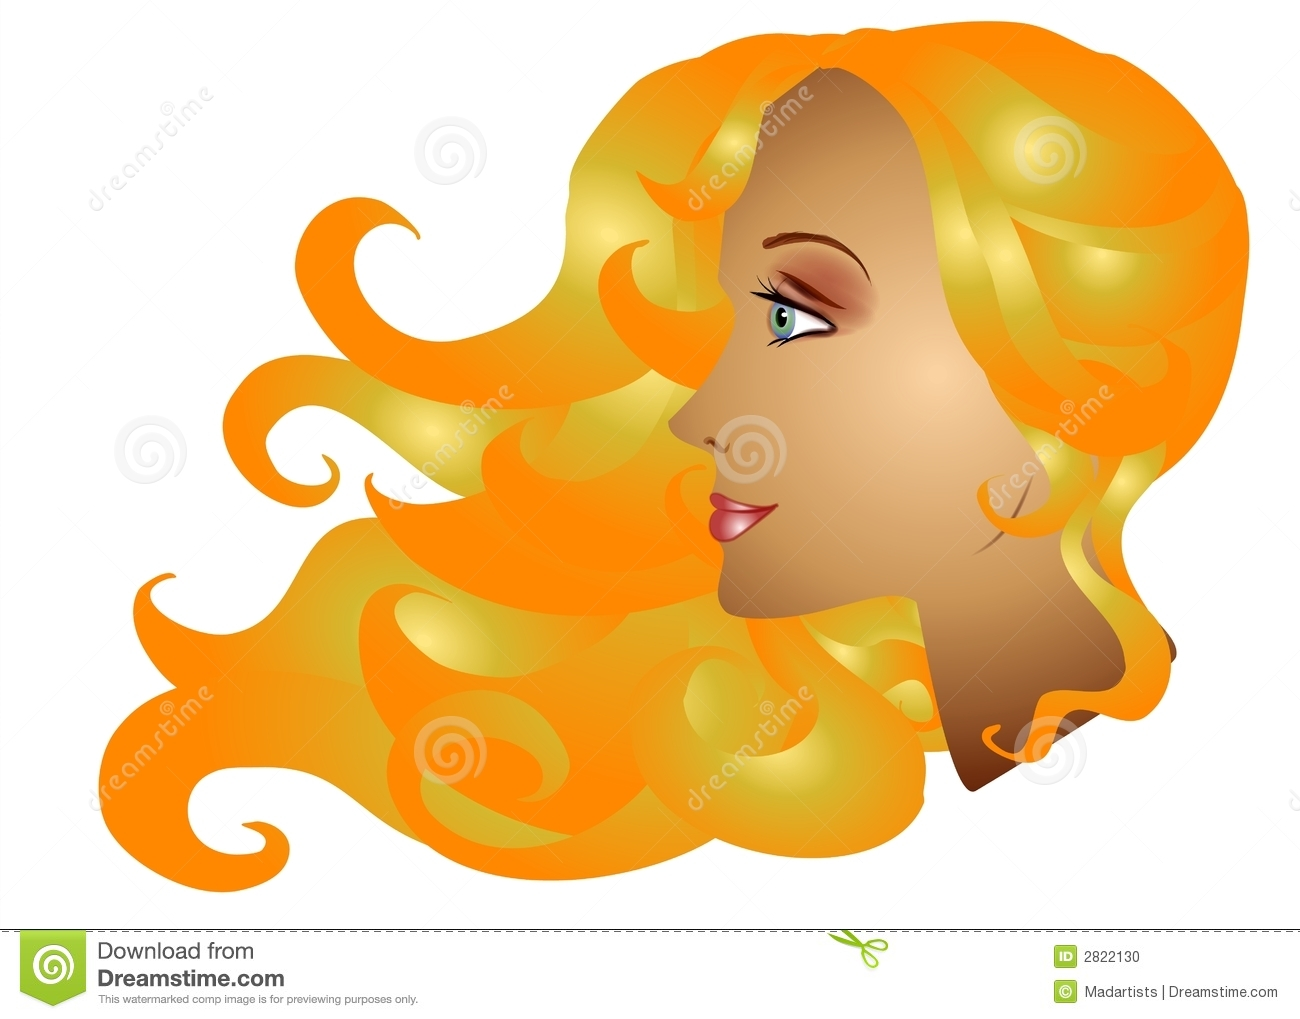 Blondes Stock Illustrations.